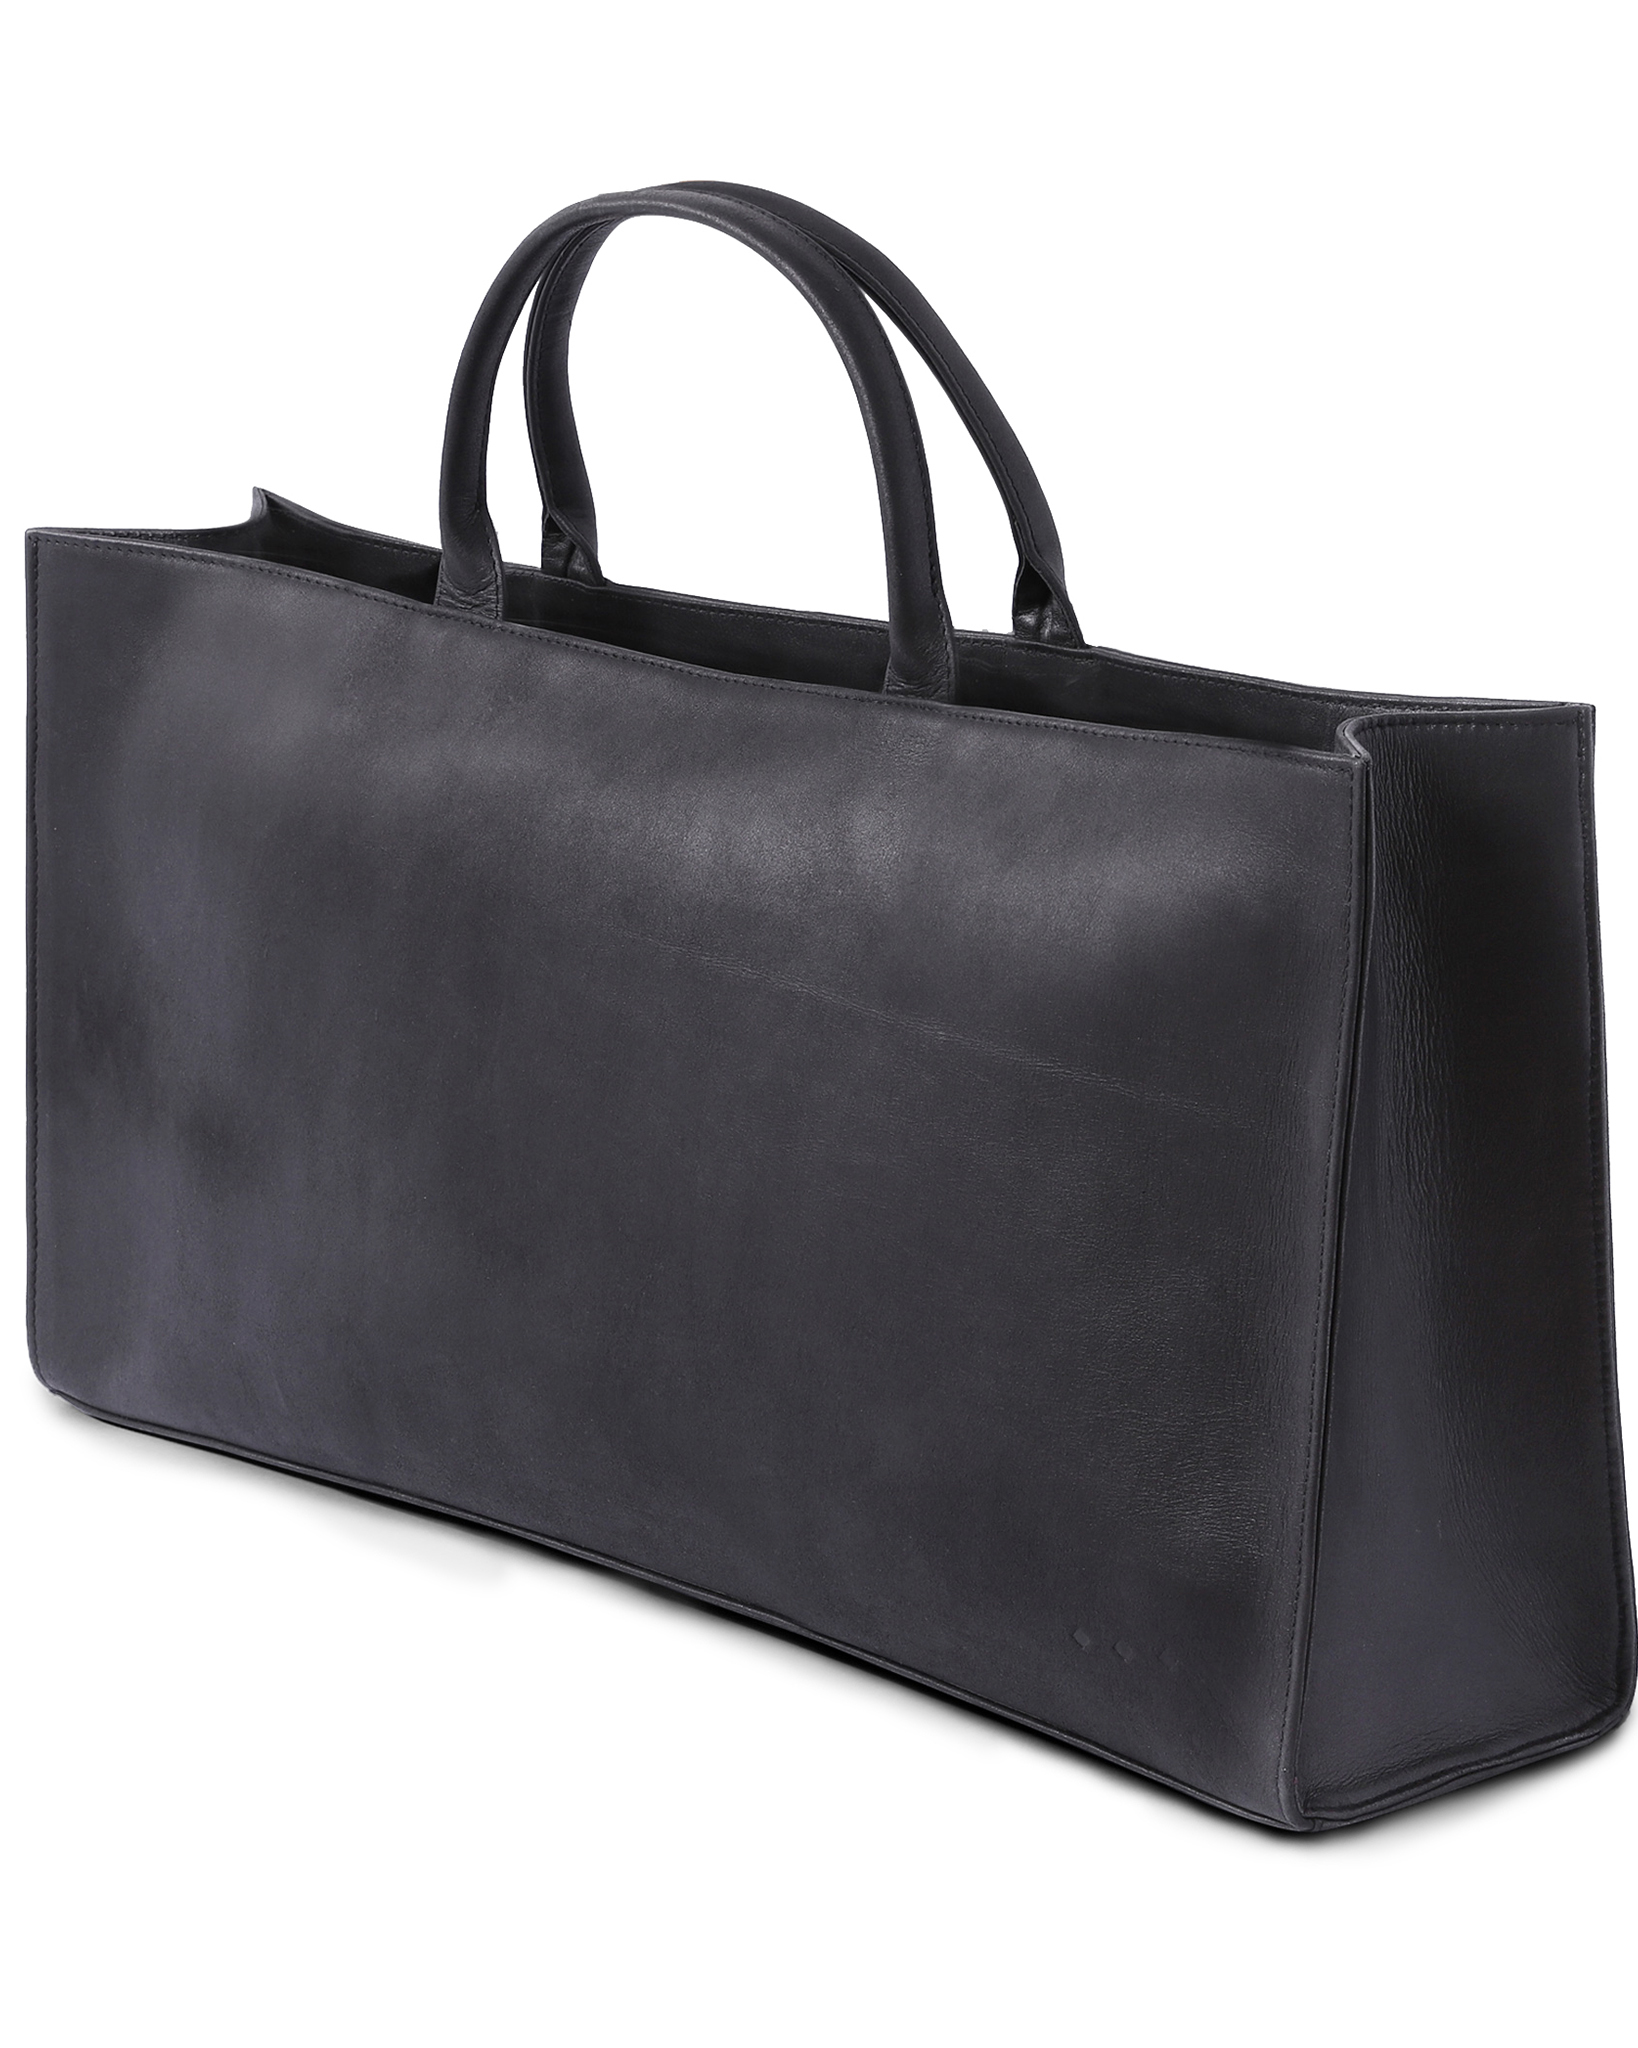 CHATWIN WORKING TOTE